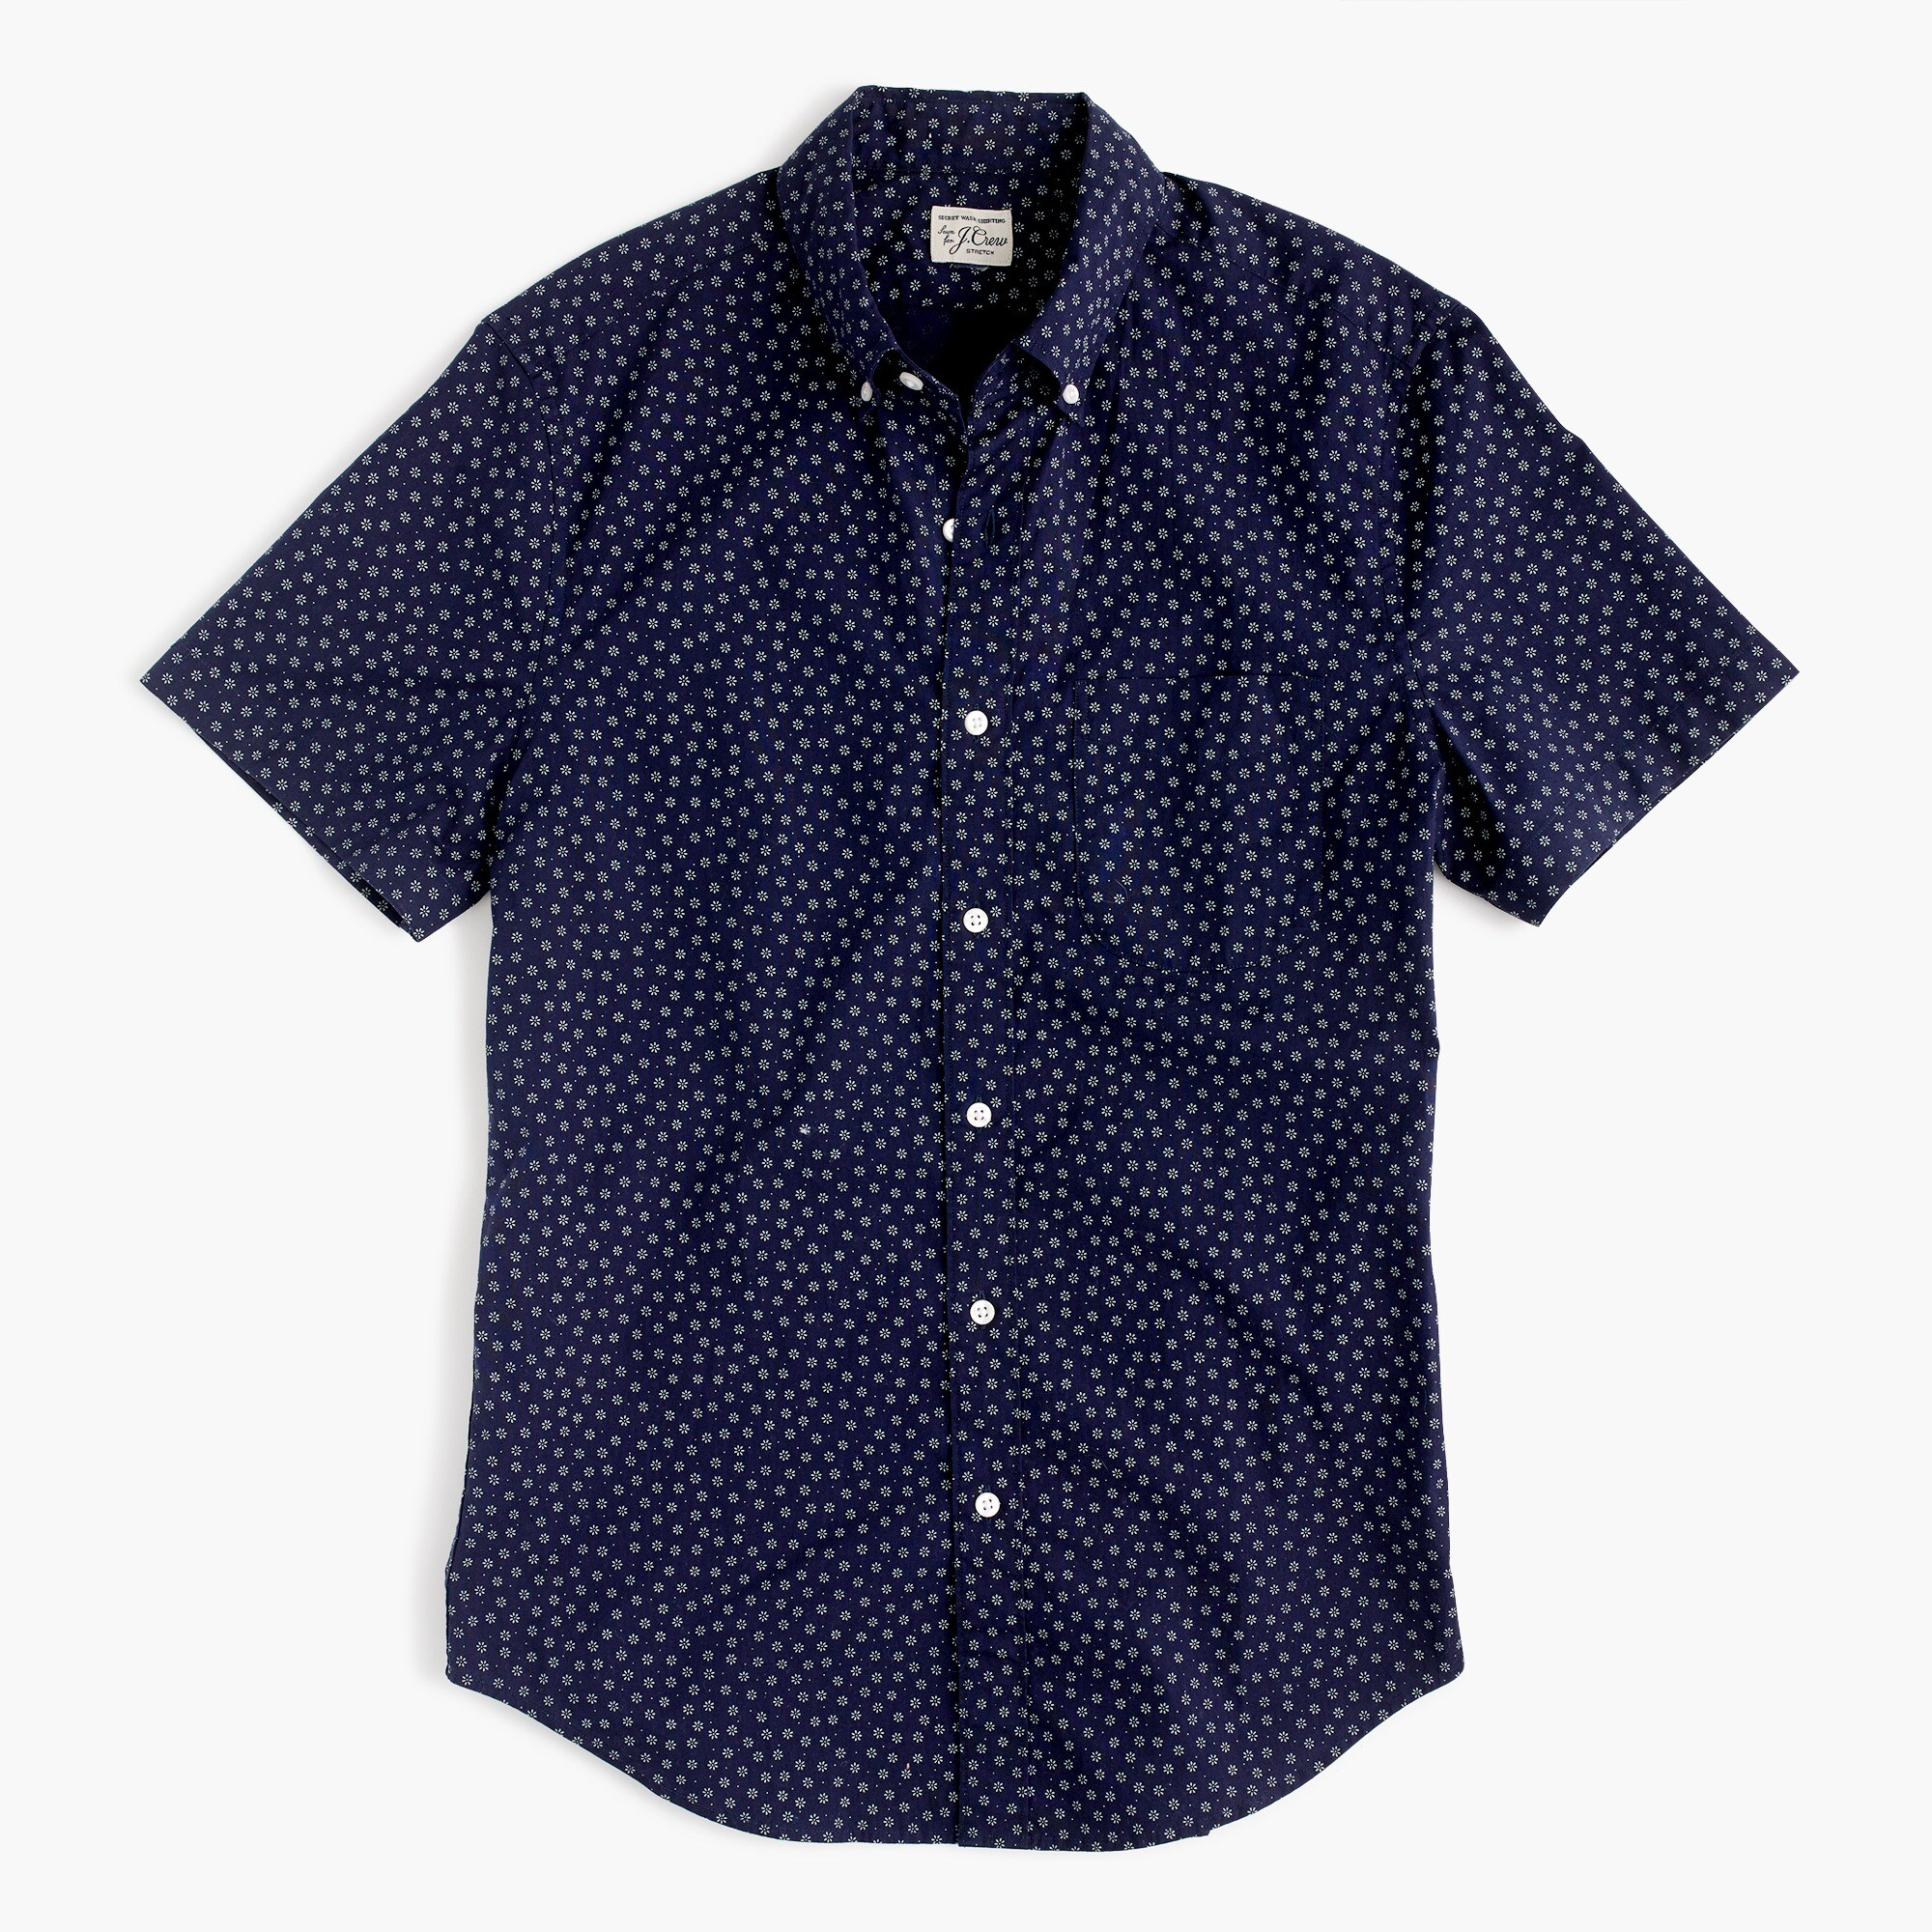 mens Stretch short-sleeve Secret Wash shirt in daisy print